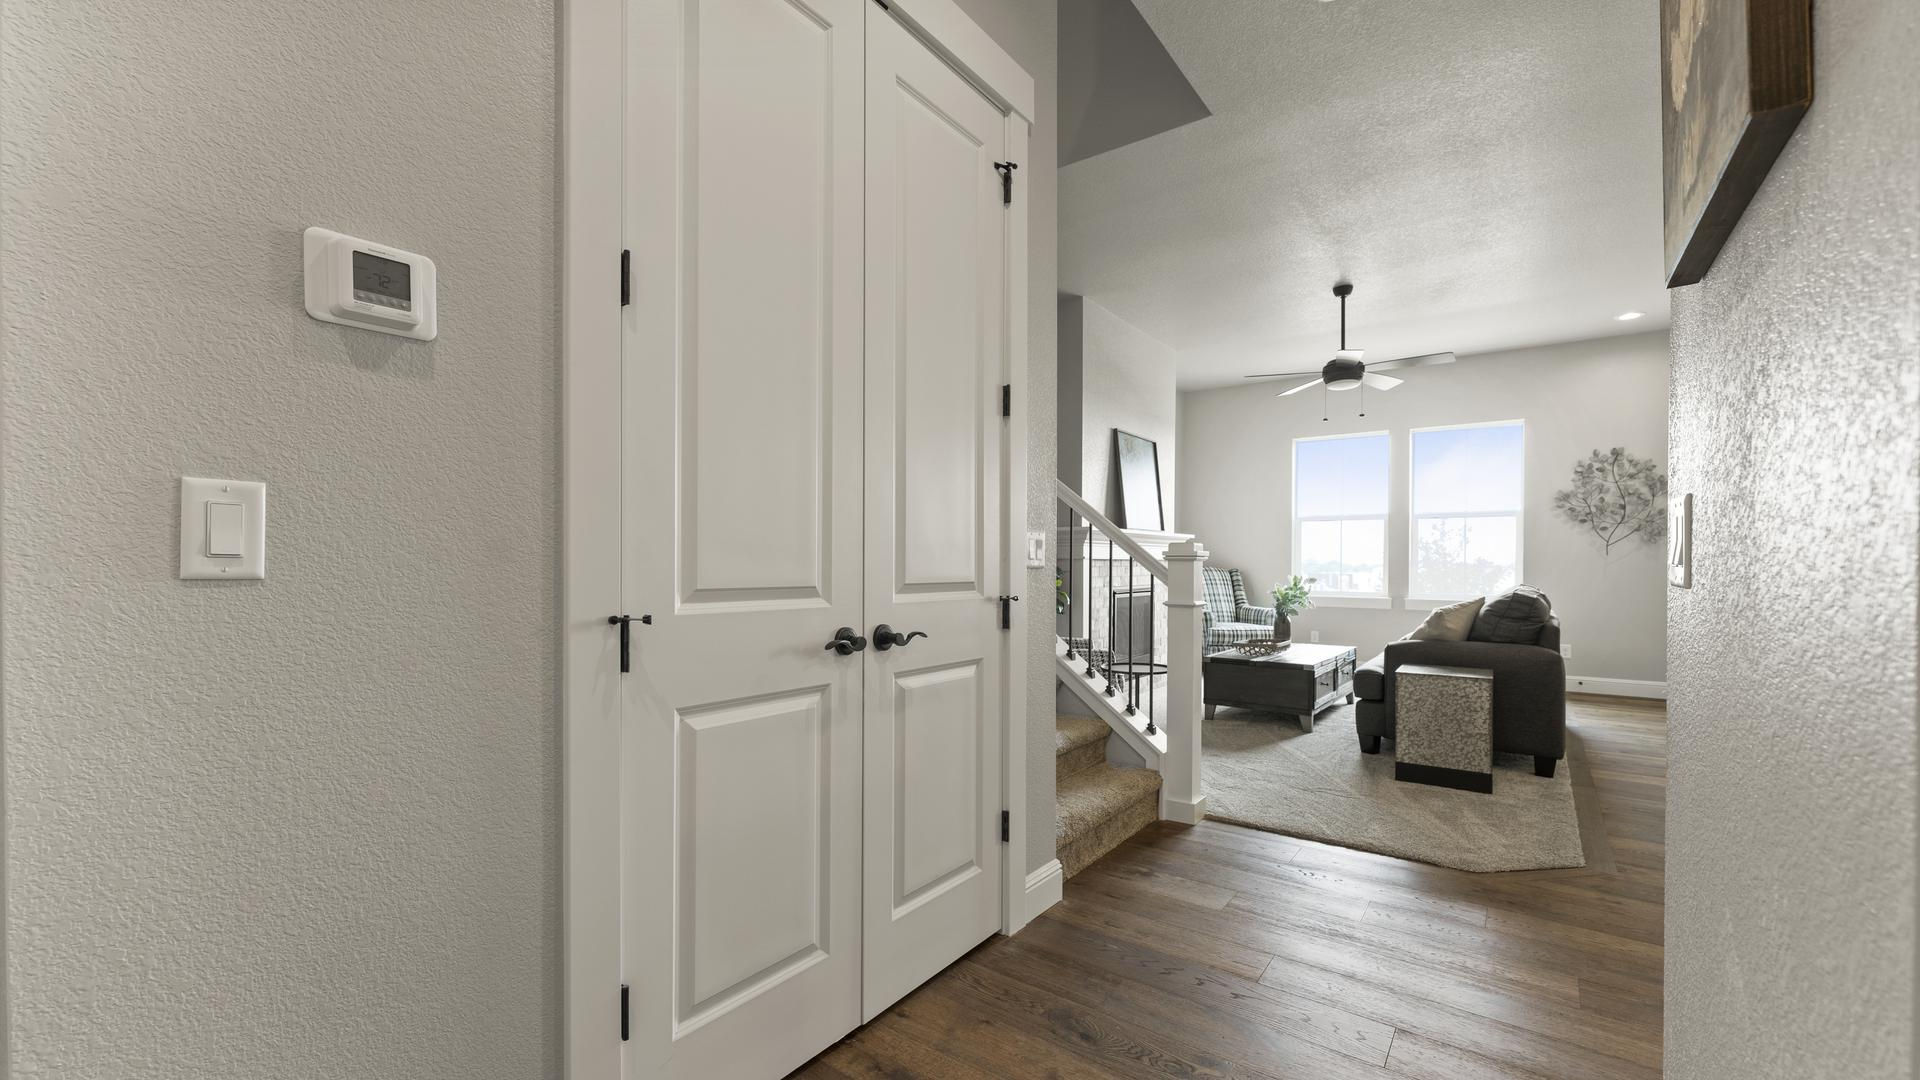 Hall - Not Actual Home - Finishes Will Vary